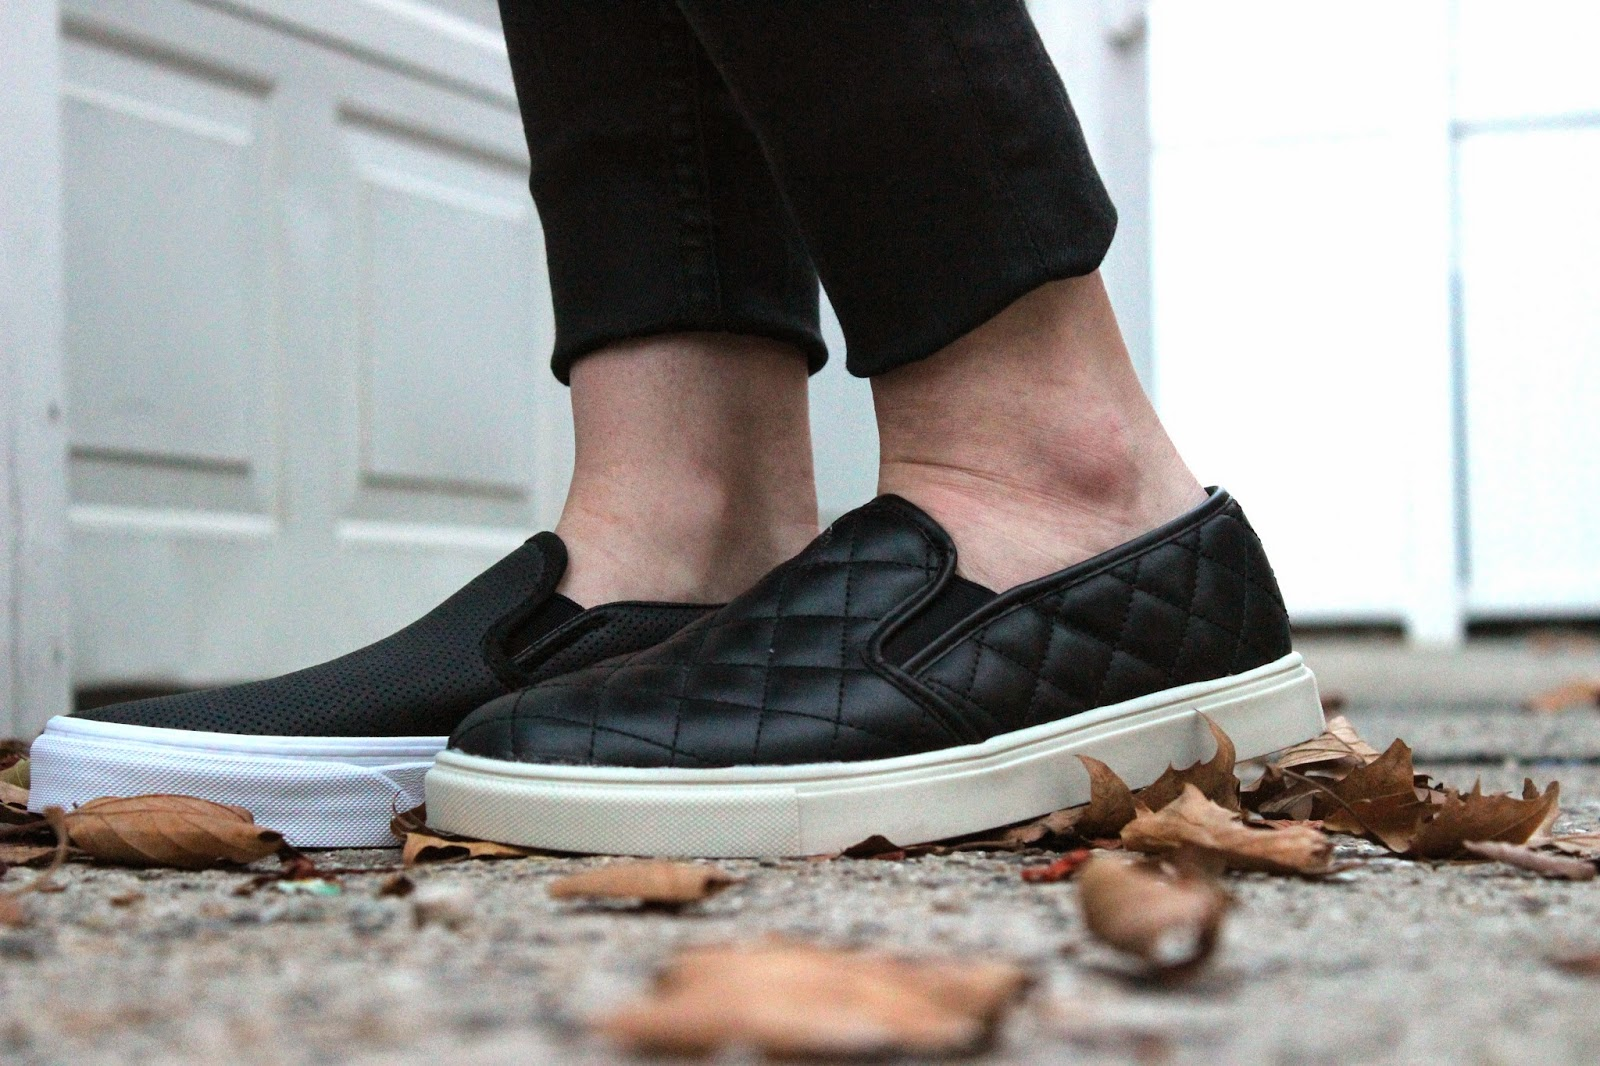 4846a94c84 REVIEW   Vans Perforated Leather Slip Ons VS Target Quilted Slip Ons ...